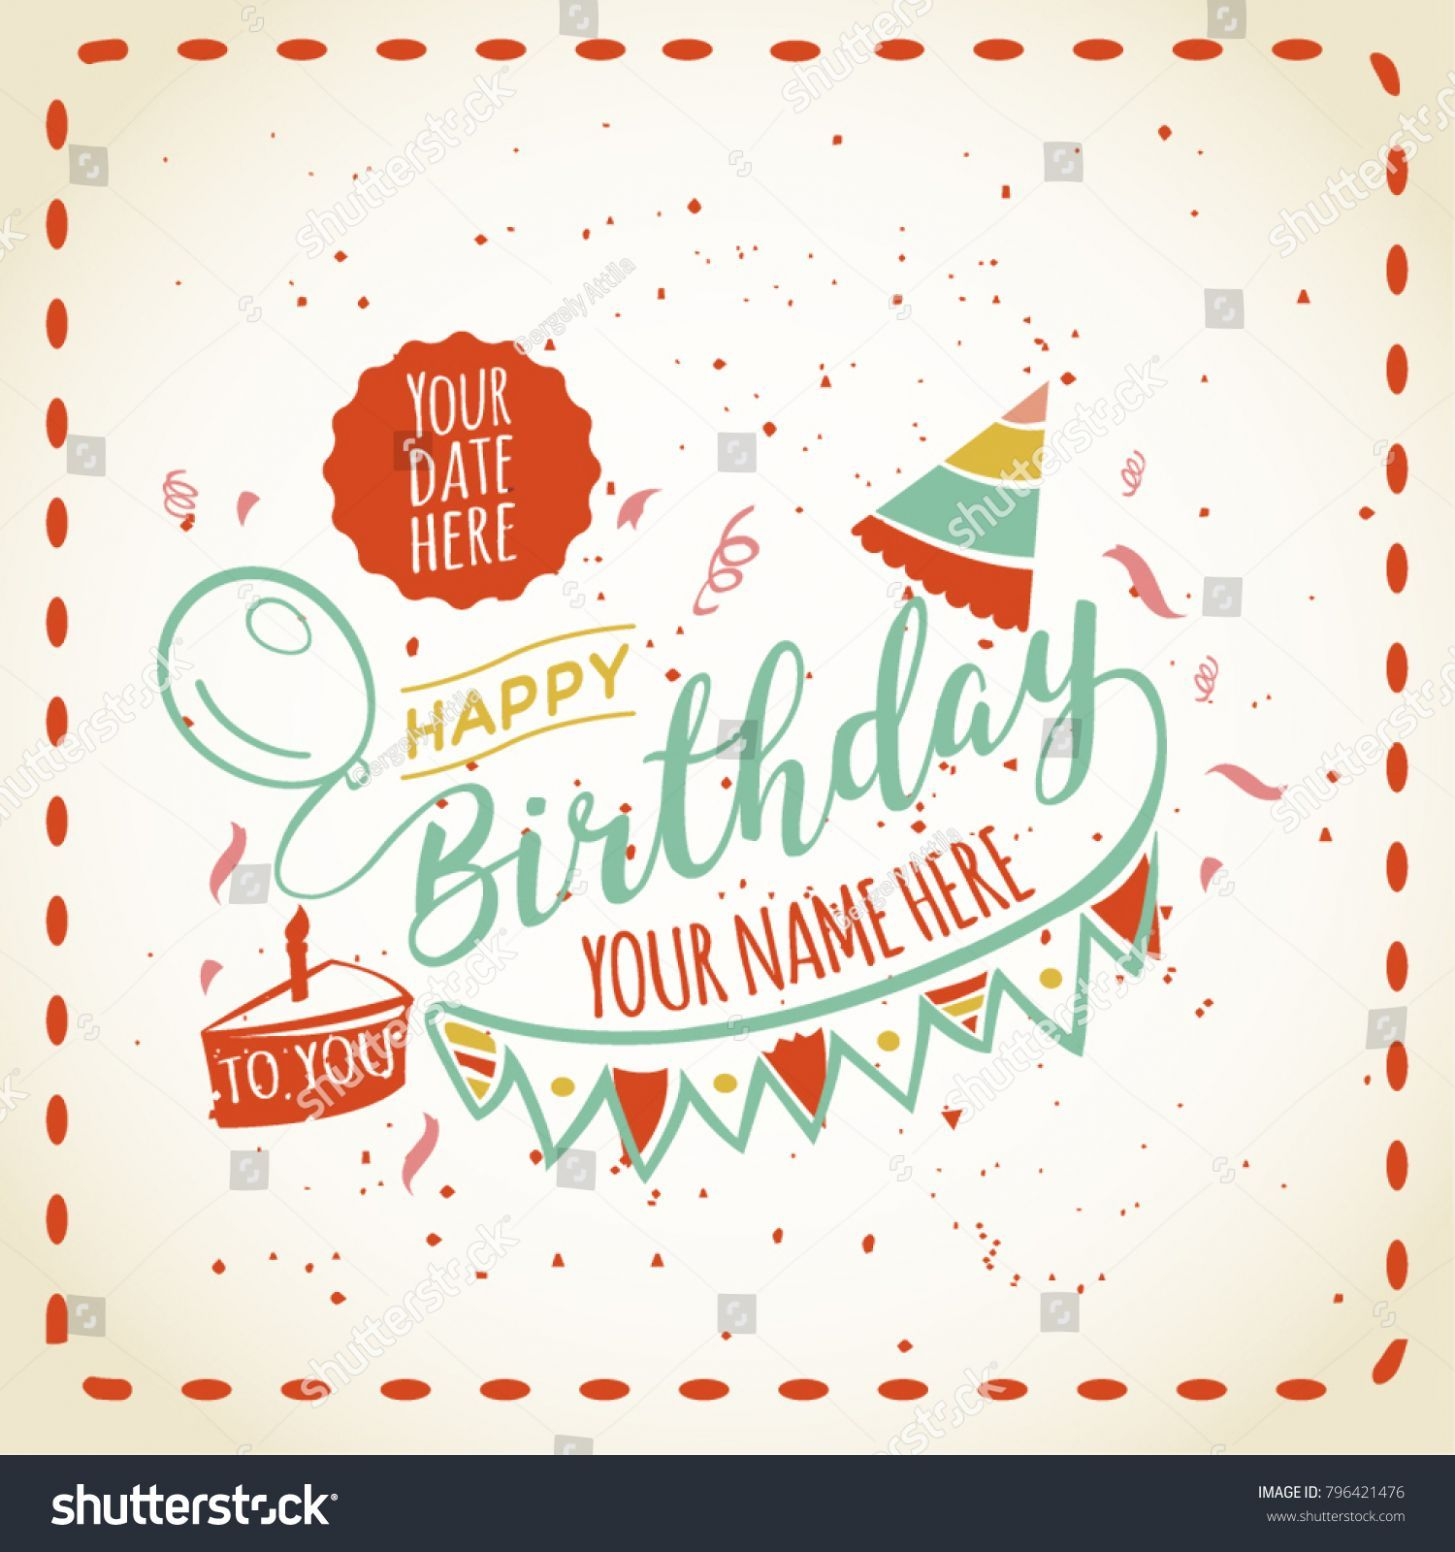 8 happy birthday card with name di 2020  e card